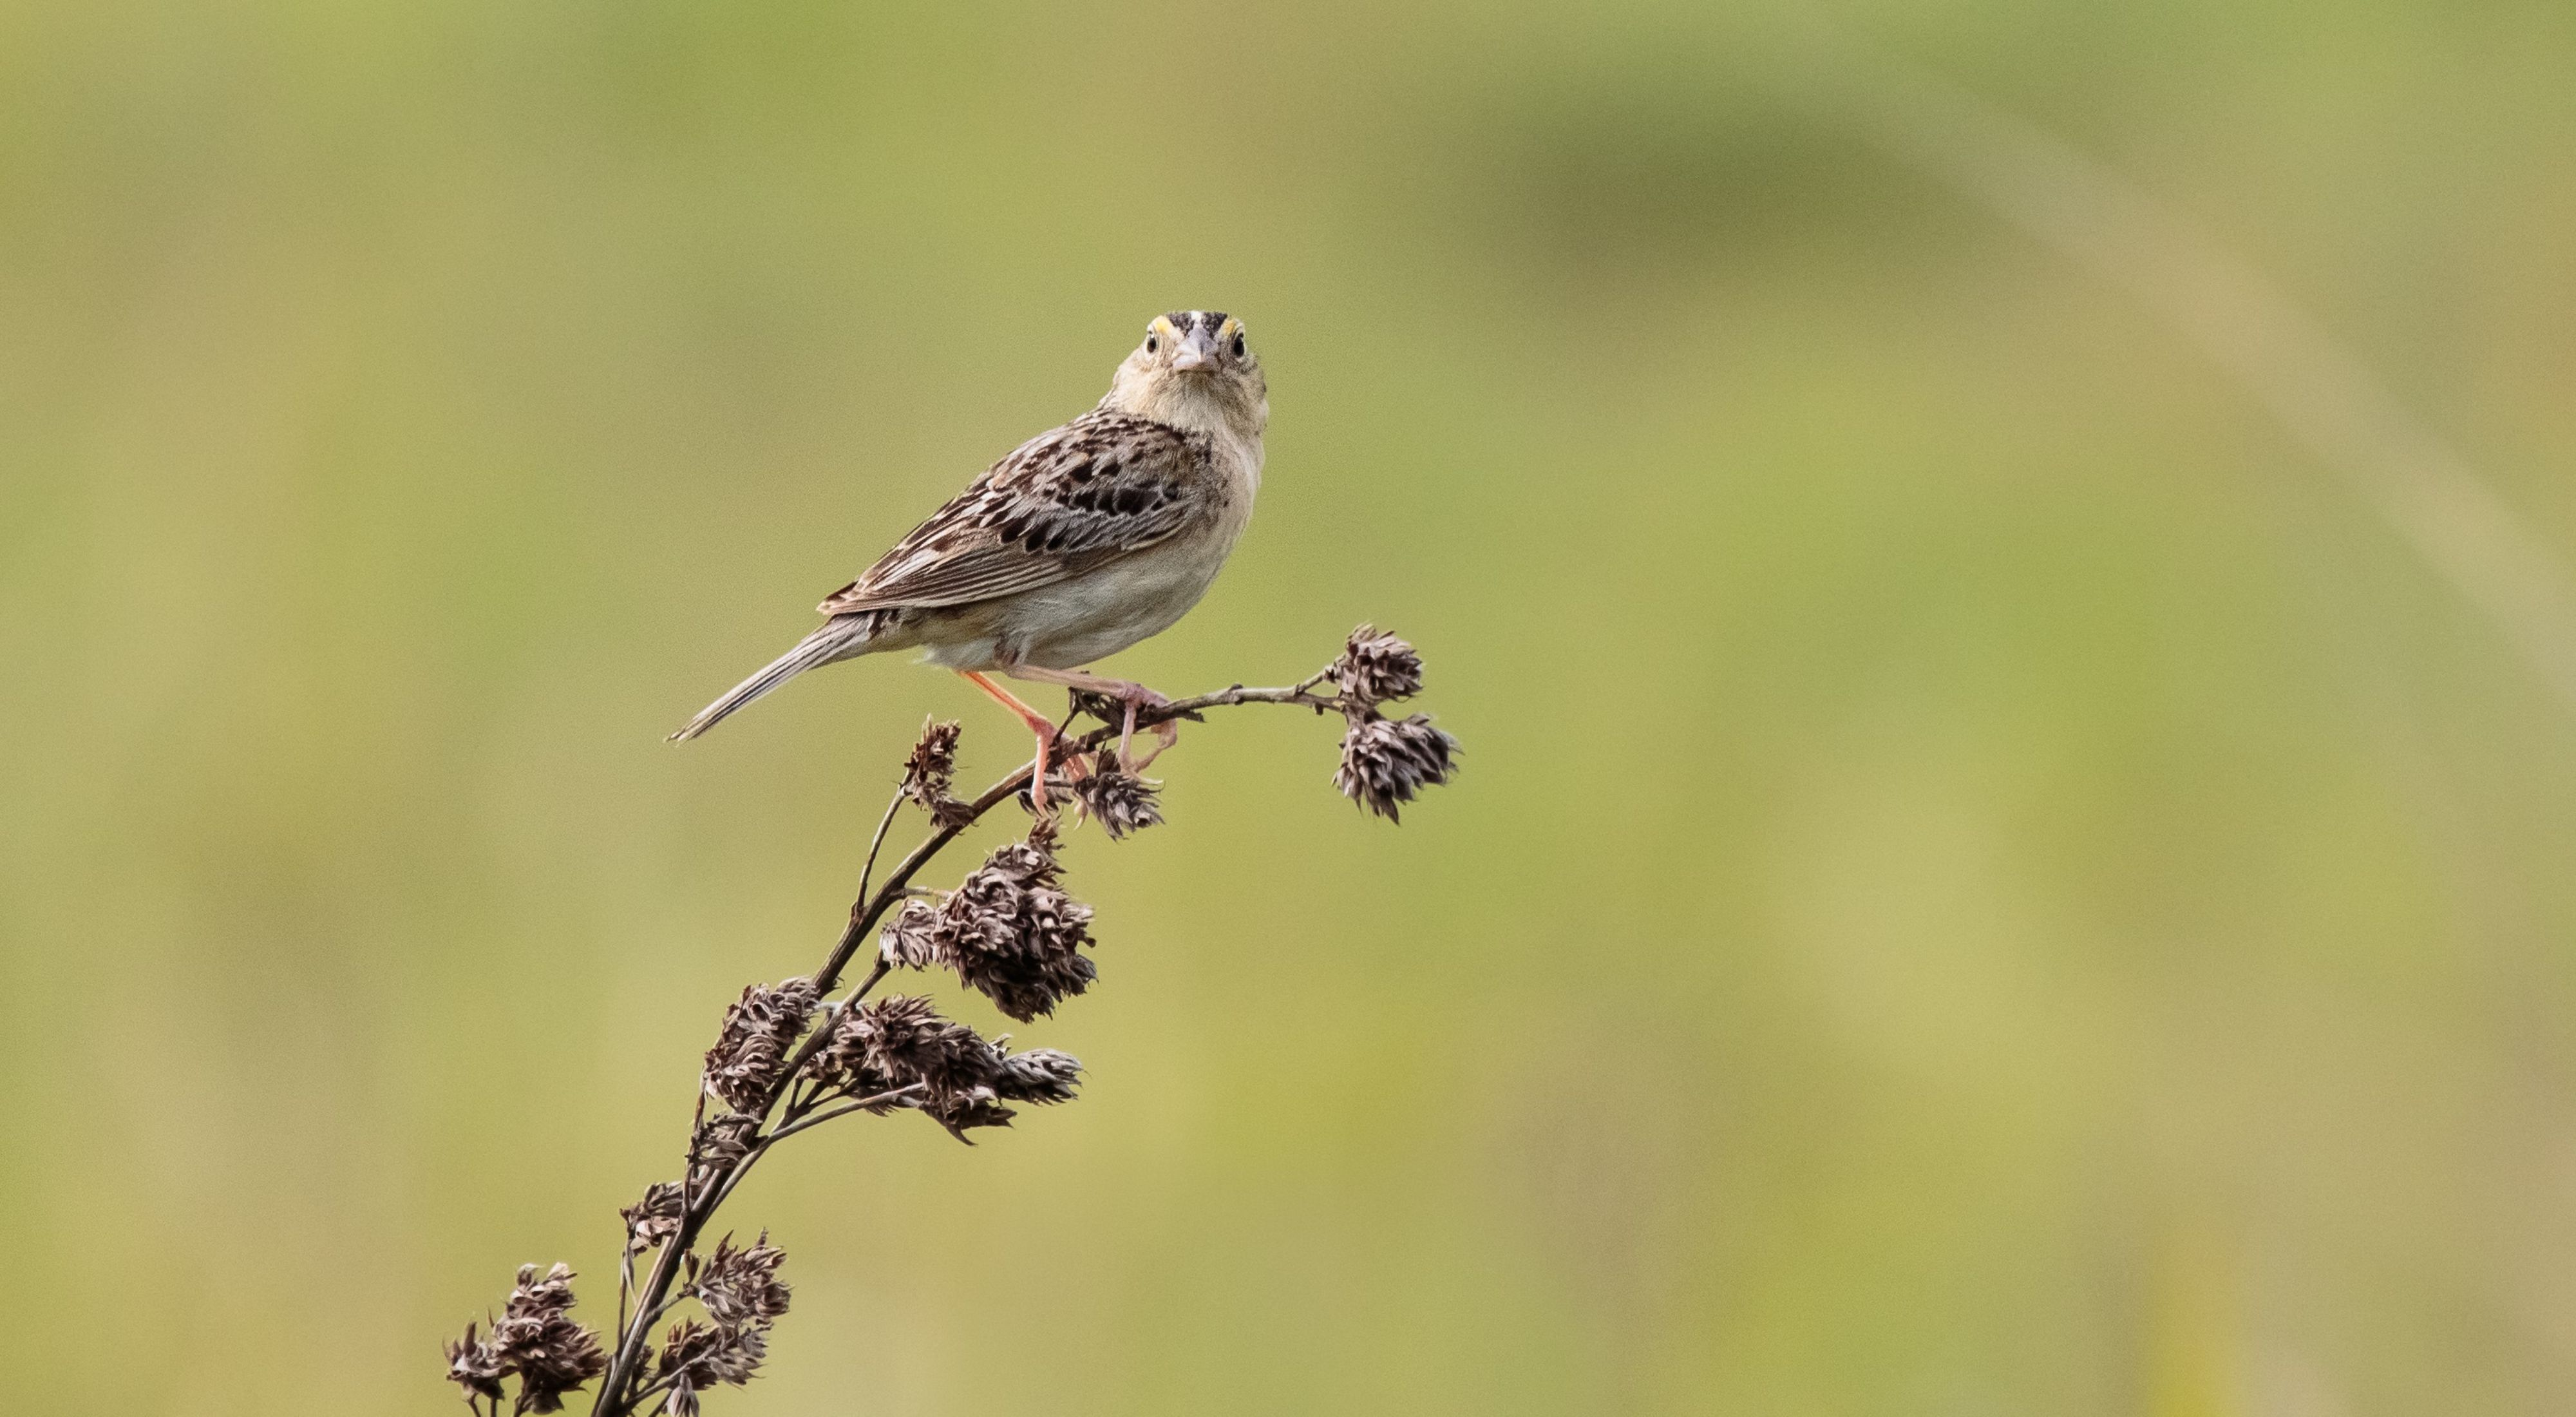 Small brownish bird perched on prairie plant.